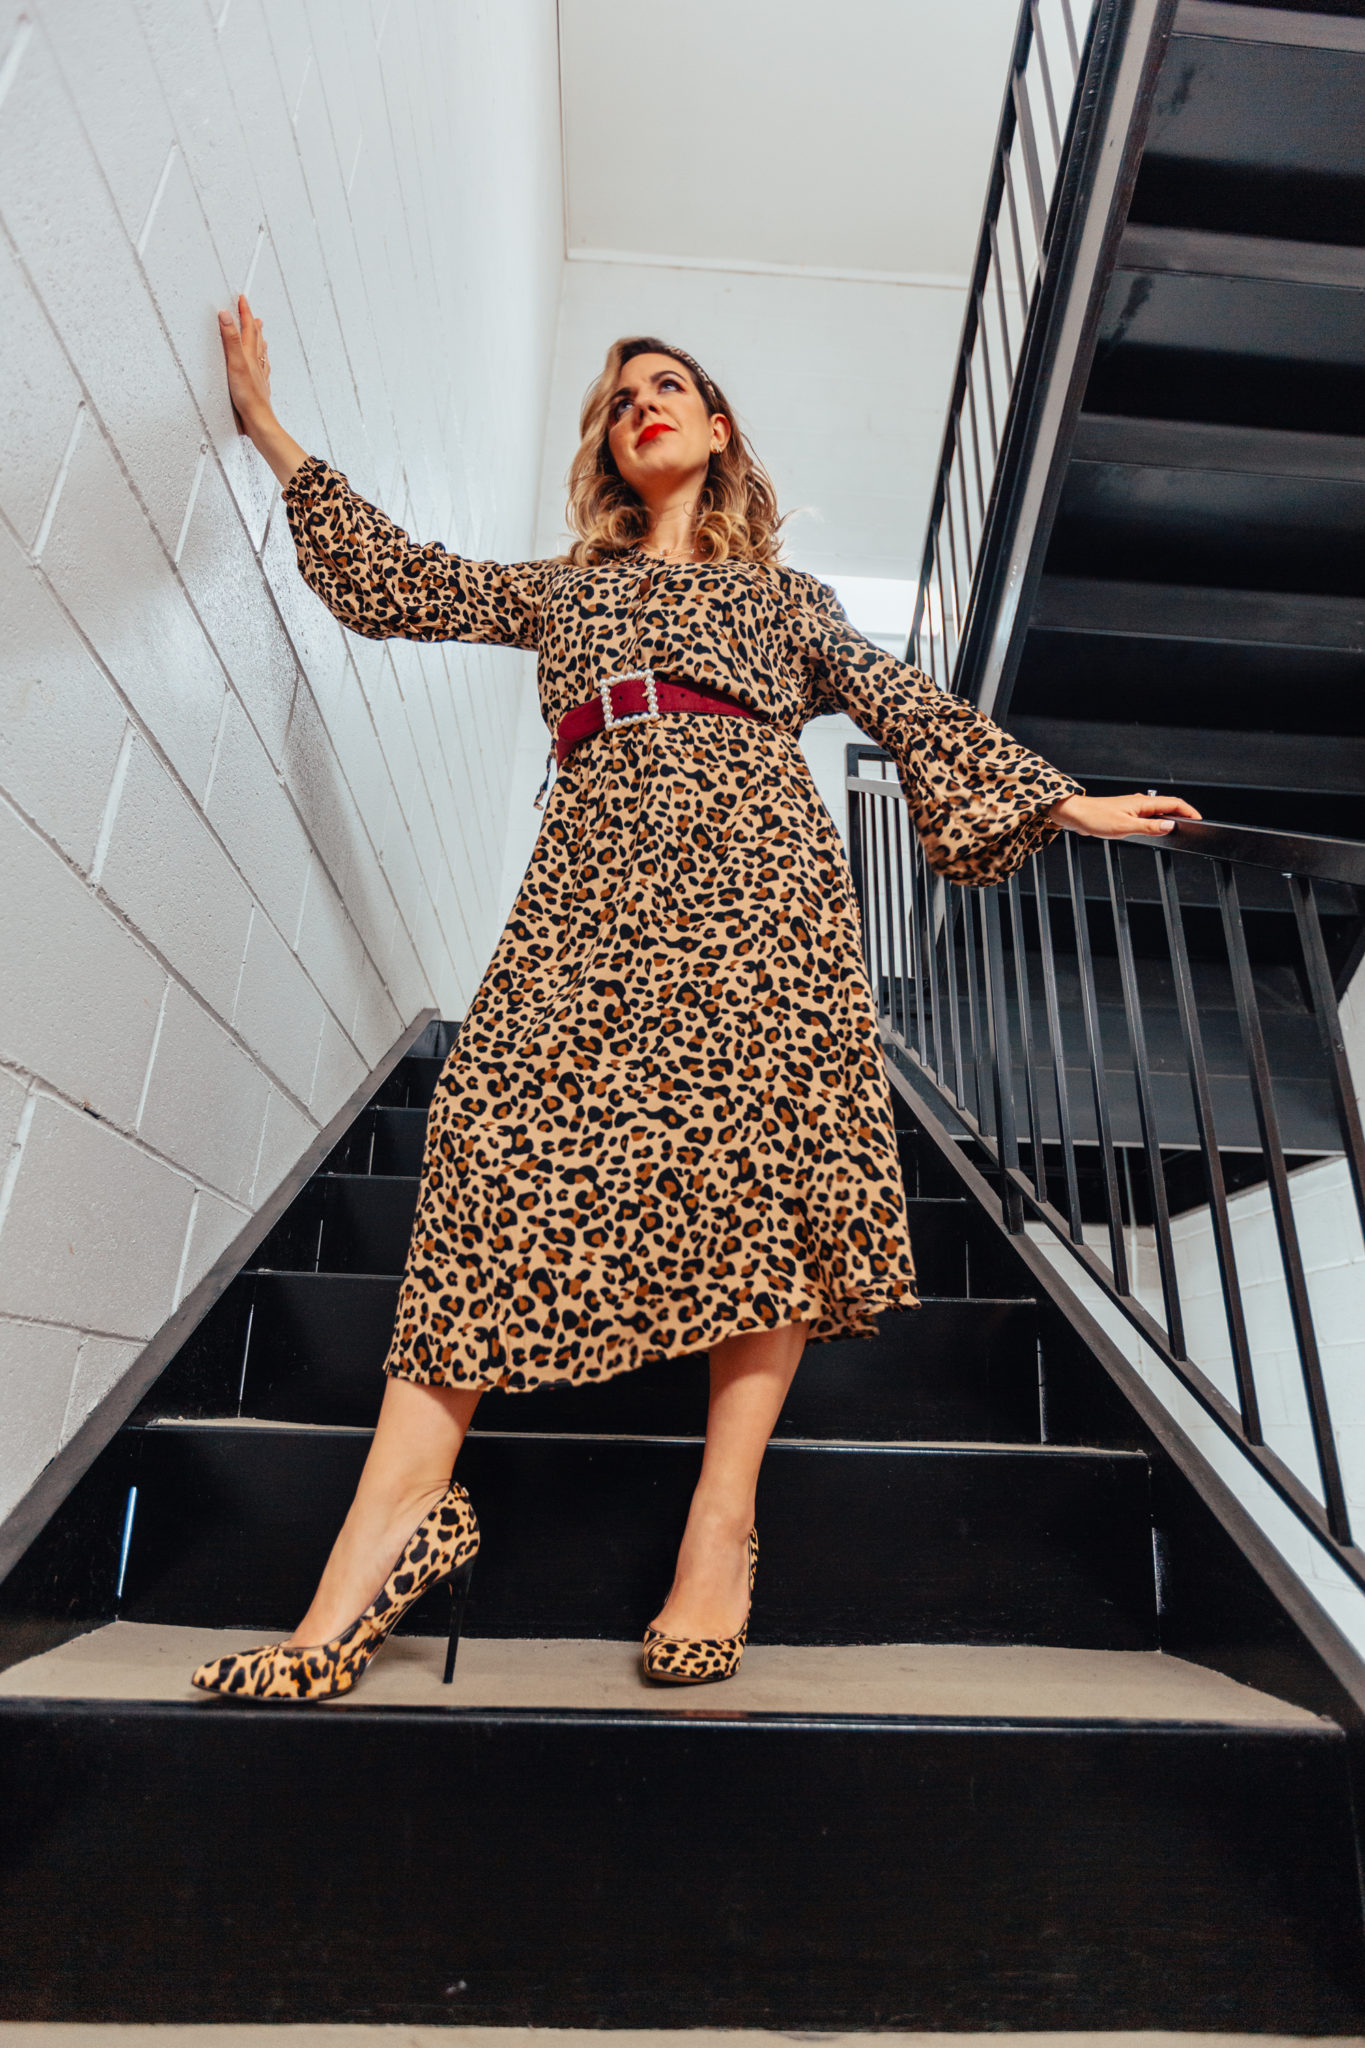 How Leopard Fashion Released Me From A Creative Slump by popular Chicago fashion blog, Glass of Glam: image of a woman standing in a stairwell and wearing a SheIn Leopard Print Half Button Blouson Shirt Dress, Nordstrom Sam Edelman Margie Genuine Calf Hair Pump, Amazon Kwartz Red Green Stripe Headbands with Leopard Print, and Amazon RangYR Women's fashion accessories belt inlaid pearl square buckle.